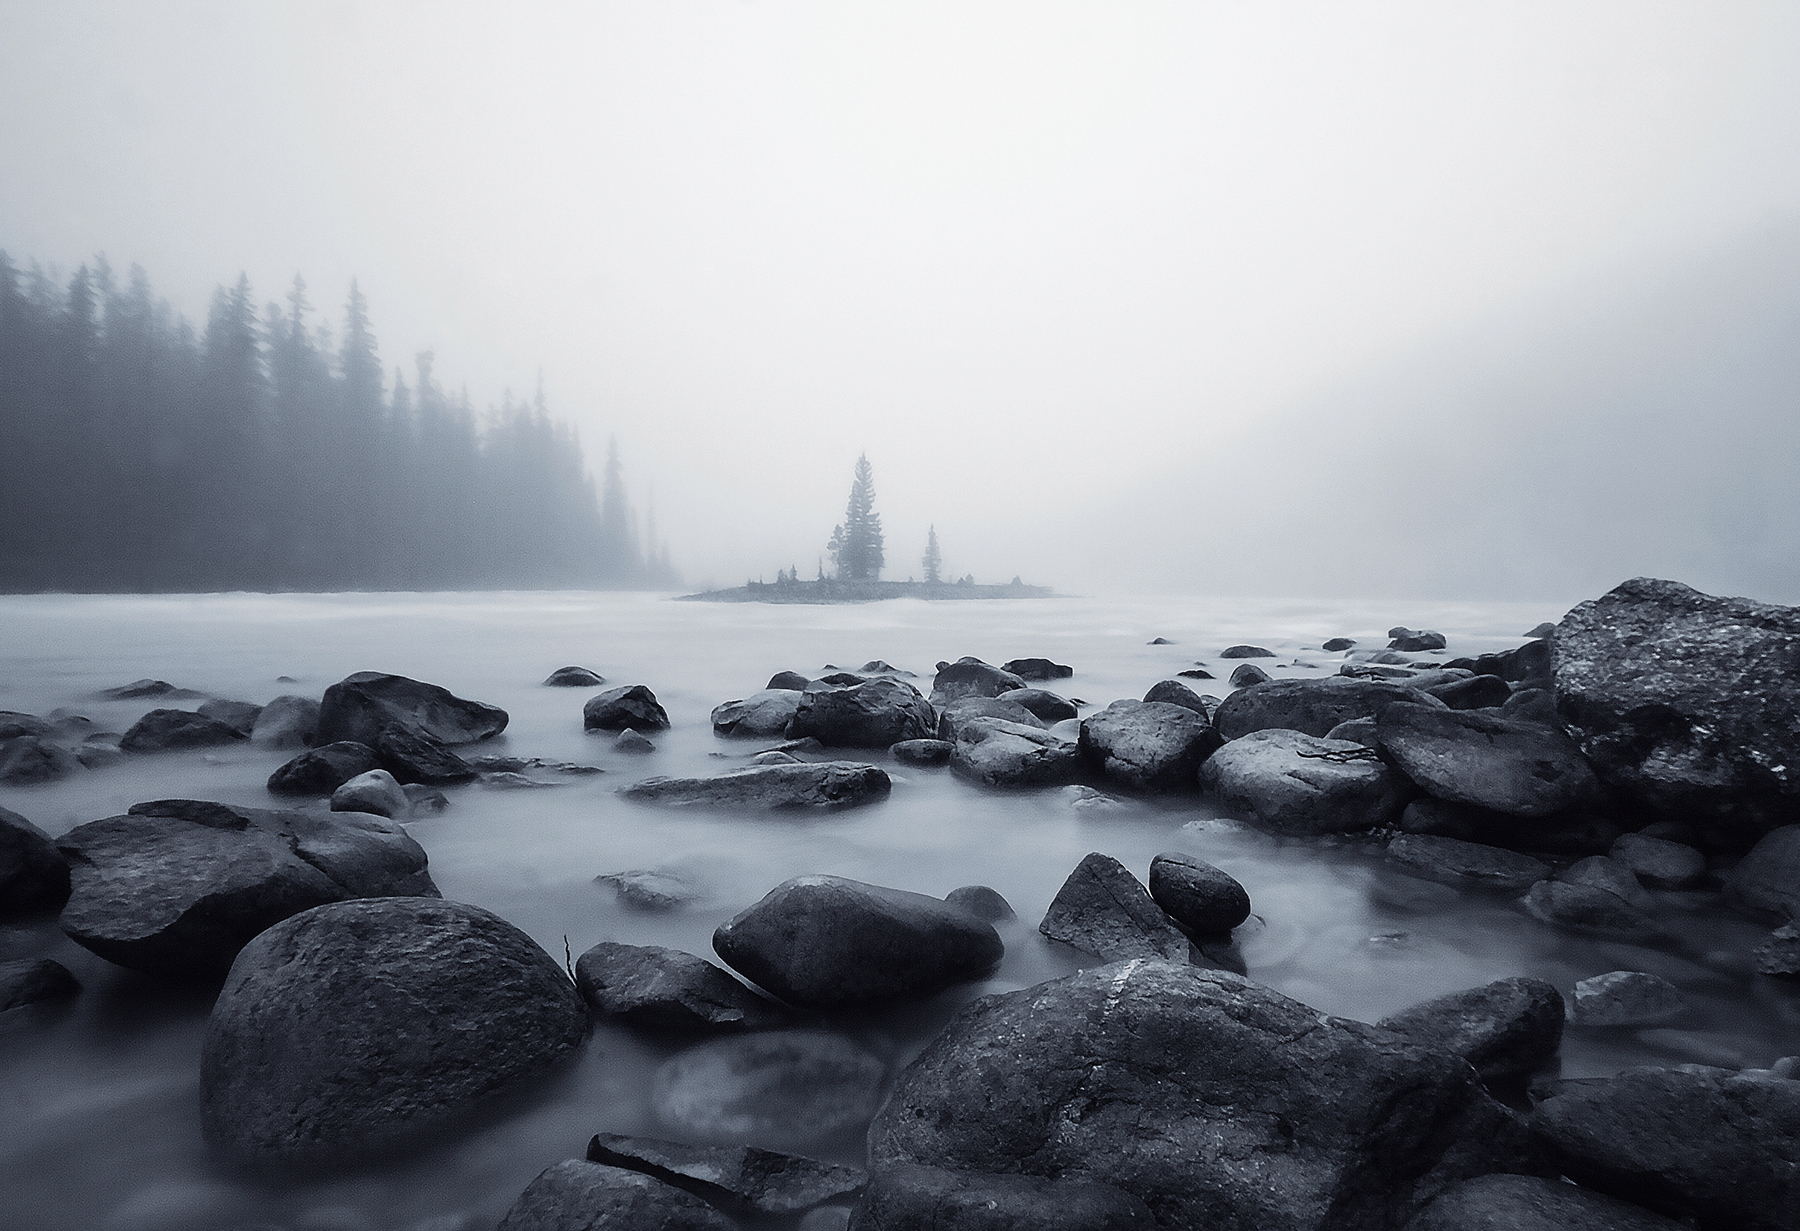 misty morning in jasper